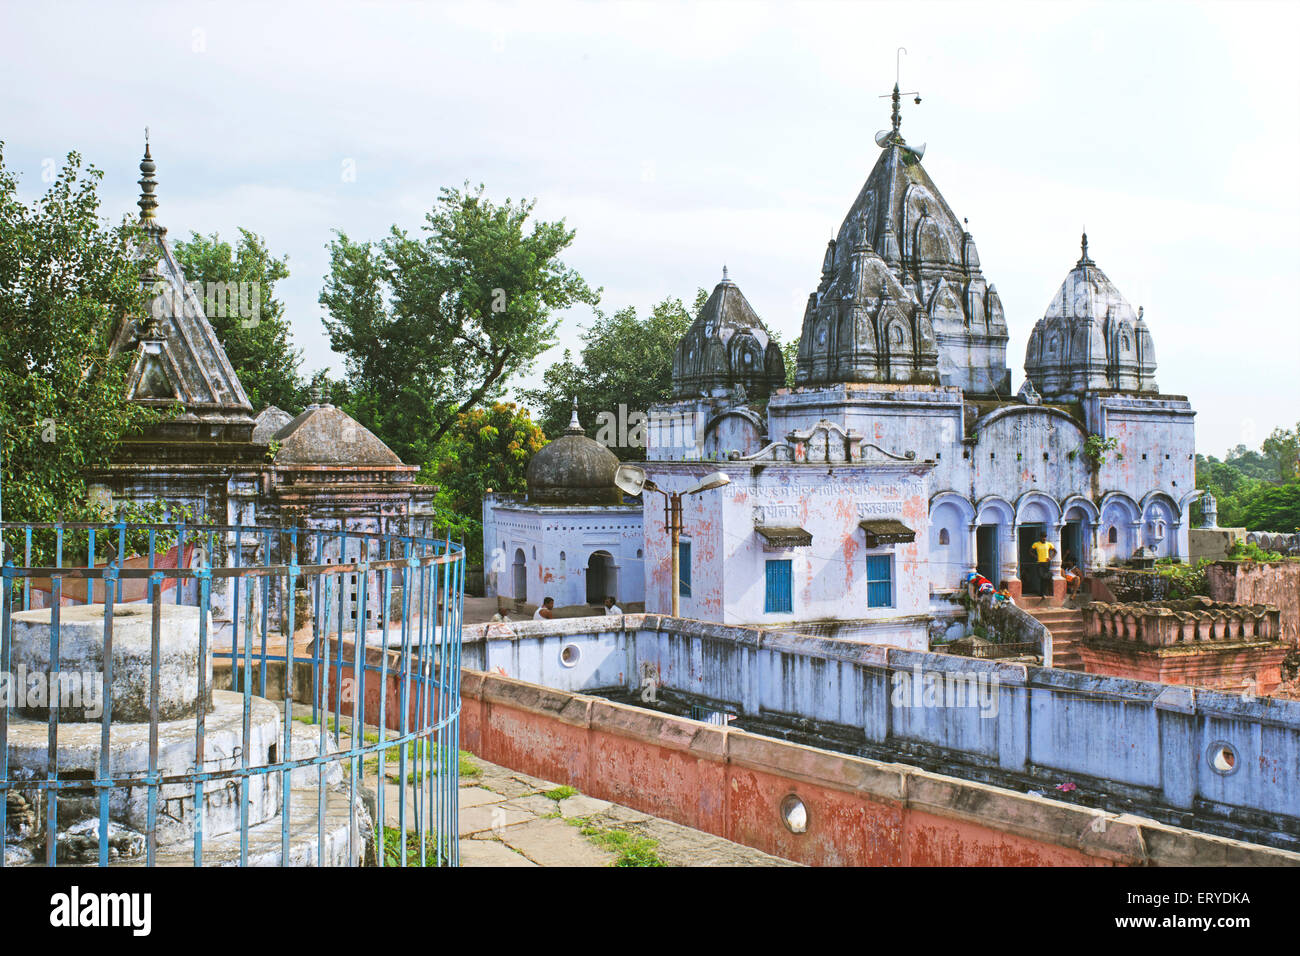 Hot spring Brahm Kund Jain temple Rajgir Bihar en Inde Photo Stock